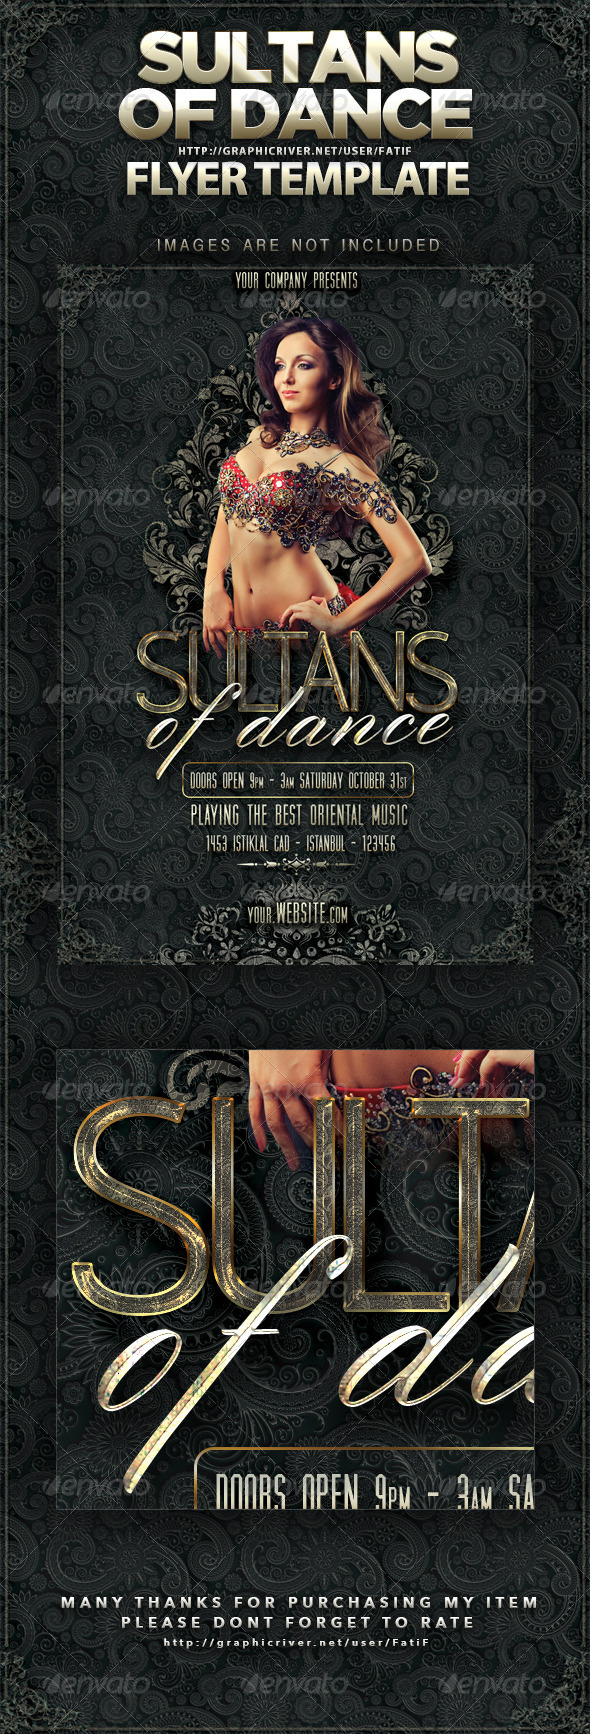 Sultans Of Dance Flyer Template - Events Flyers